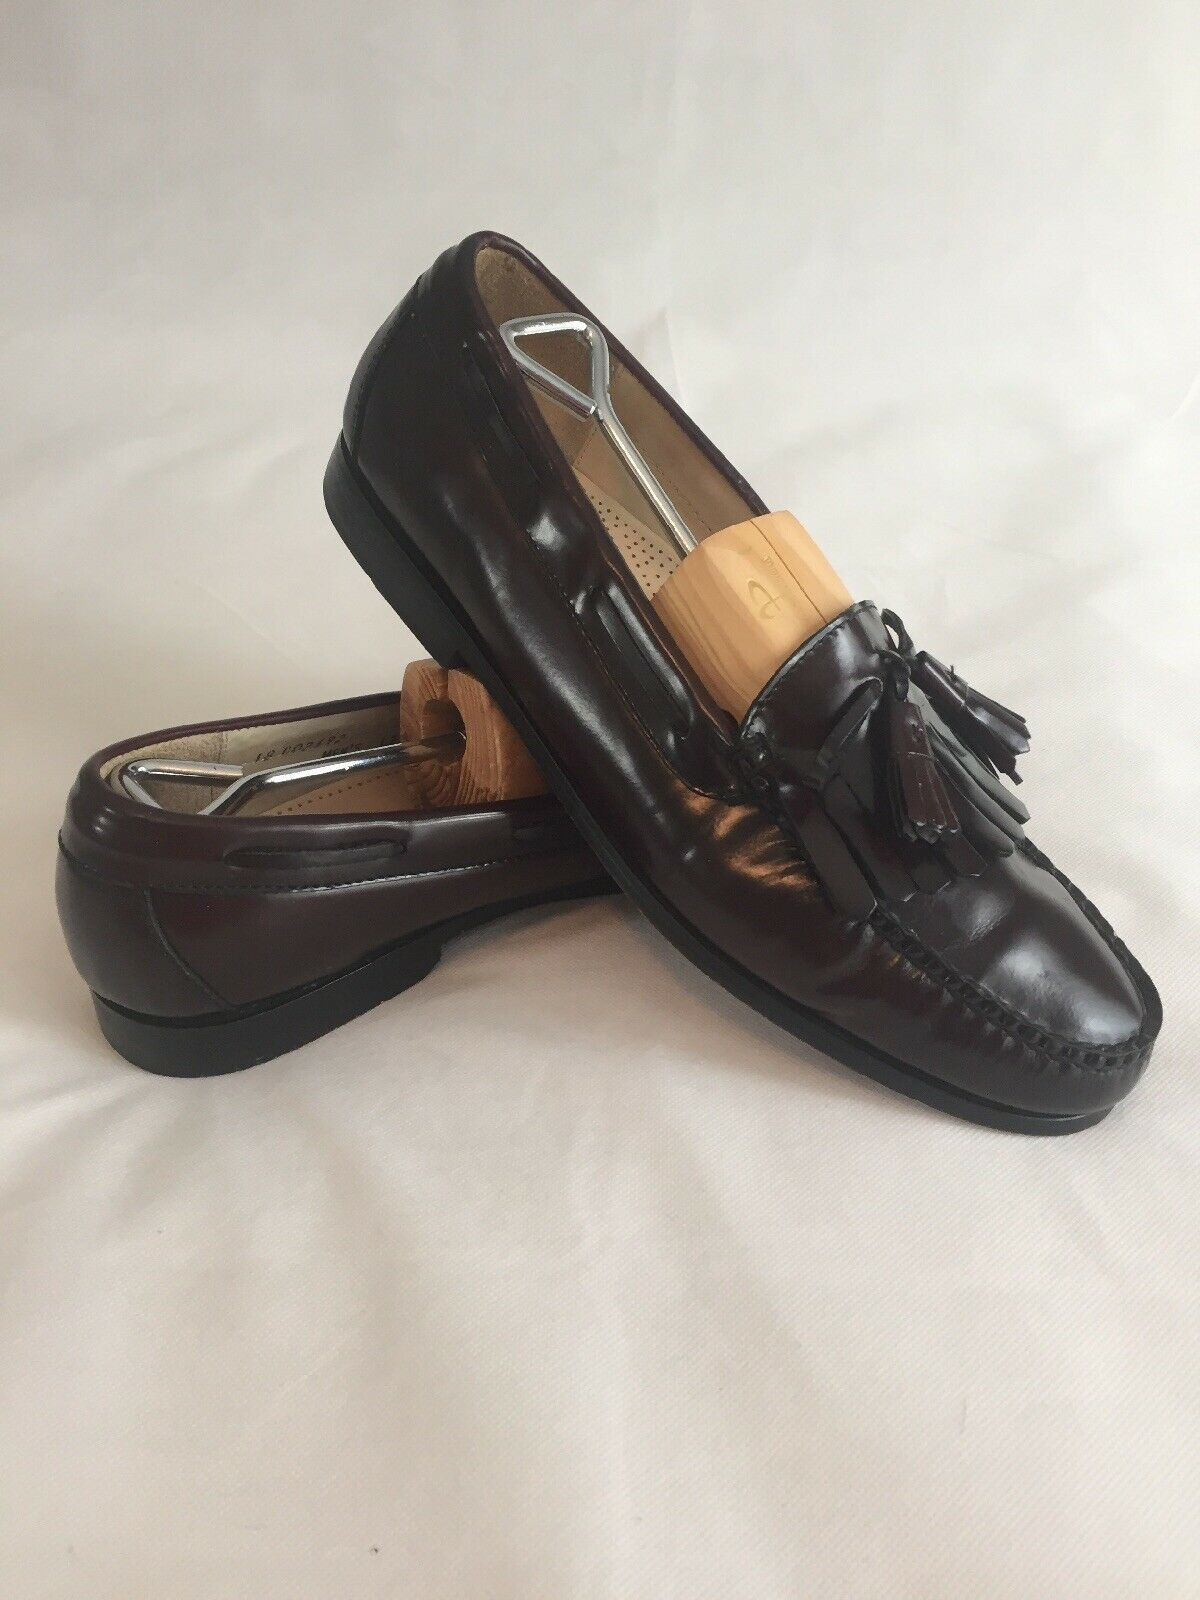 Cole Haan Men's Loafers shoes 12D Pinch Tassel Burgundy Oxblood Leather C02692